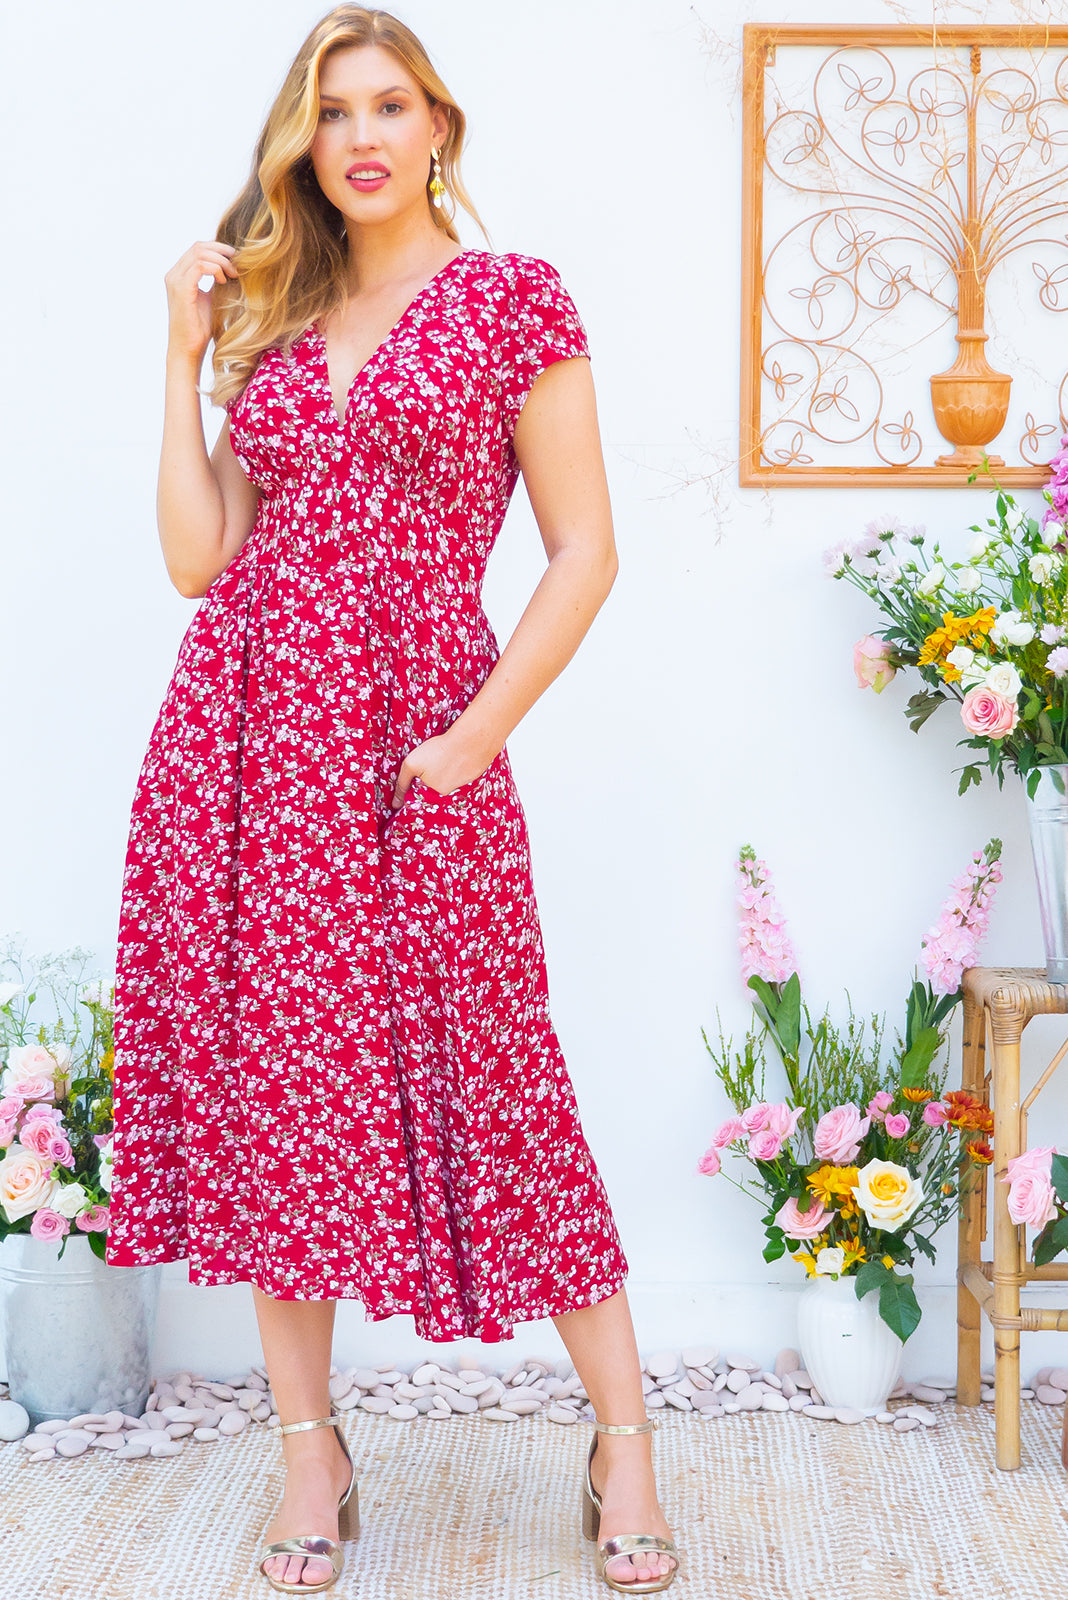 Lizzie Red Tahalia Midi dress features a vintage inspired fitted basque waist and elasticated waist with a cap sleeve and deep v neck the fabric is a soft woven rayon in a bright red small floral print